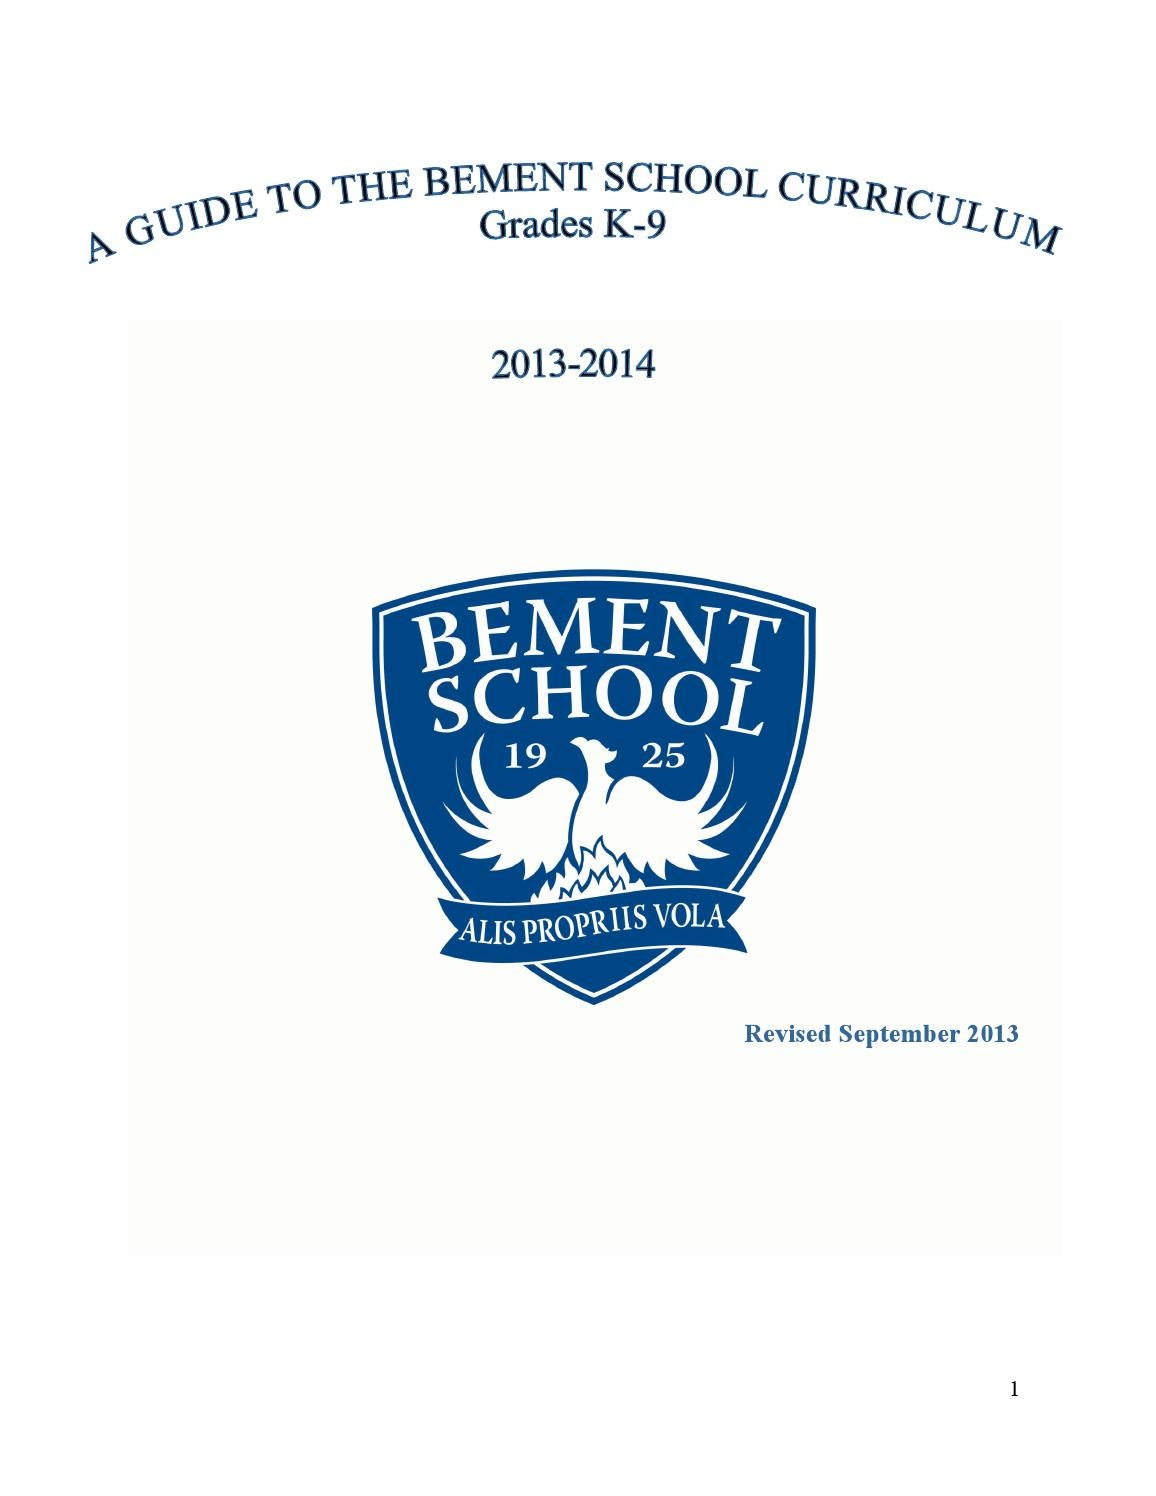 Curriculum guide 2013 2014 by The Bement School - issuu